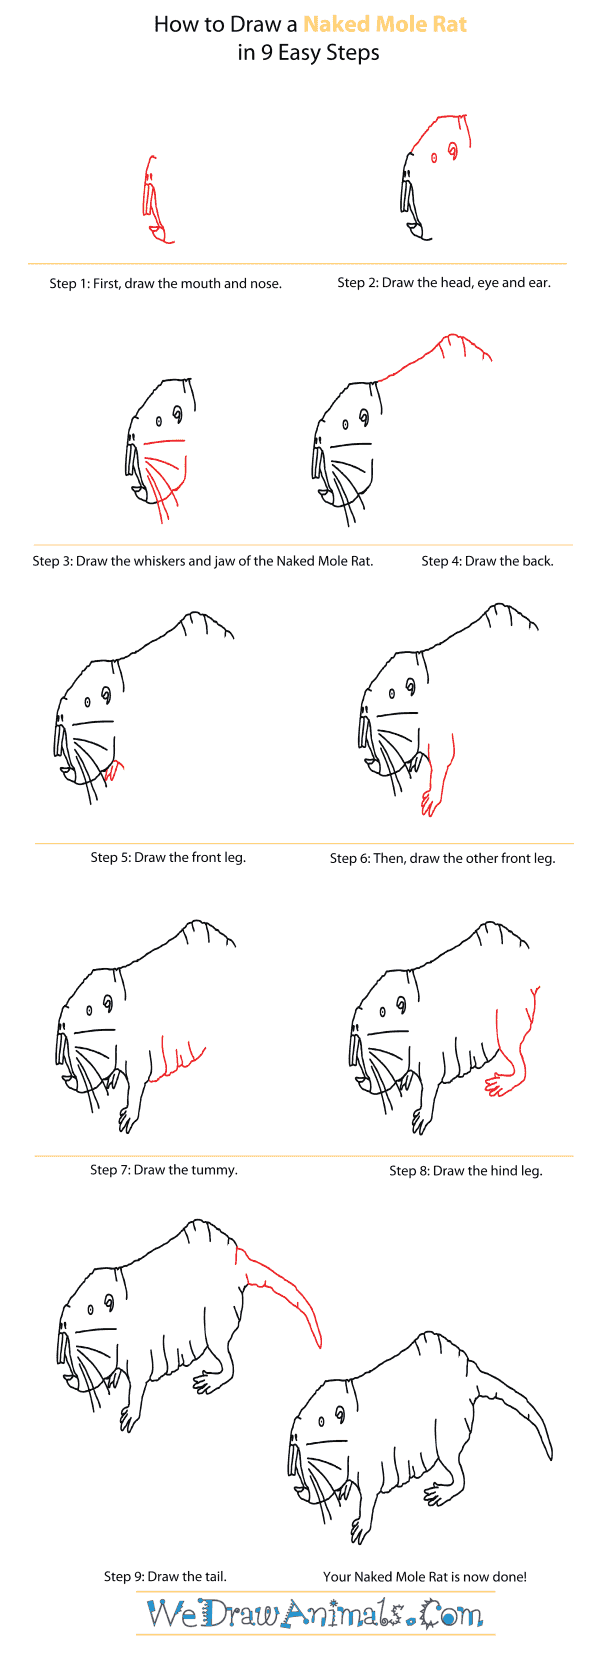 How to Draw a Naked Mole Rat - Step-By-Step Tutorial